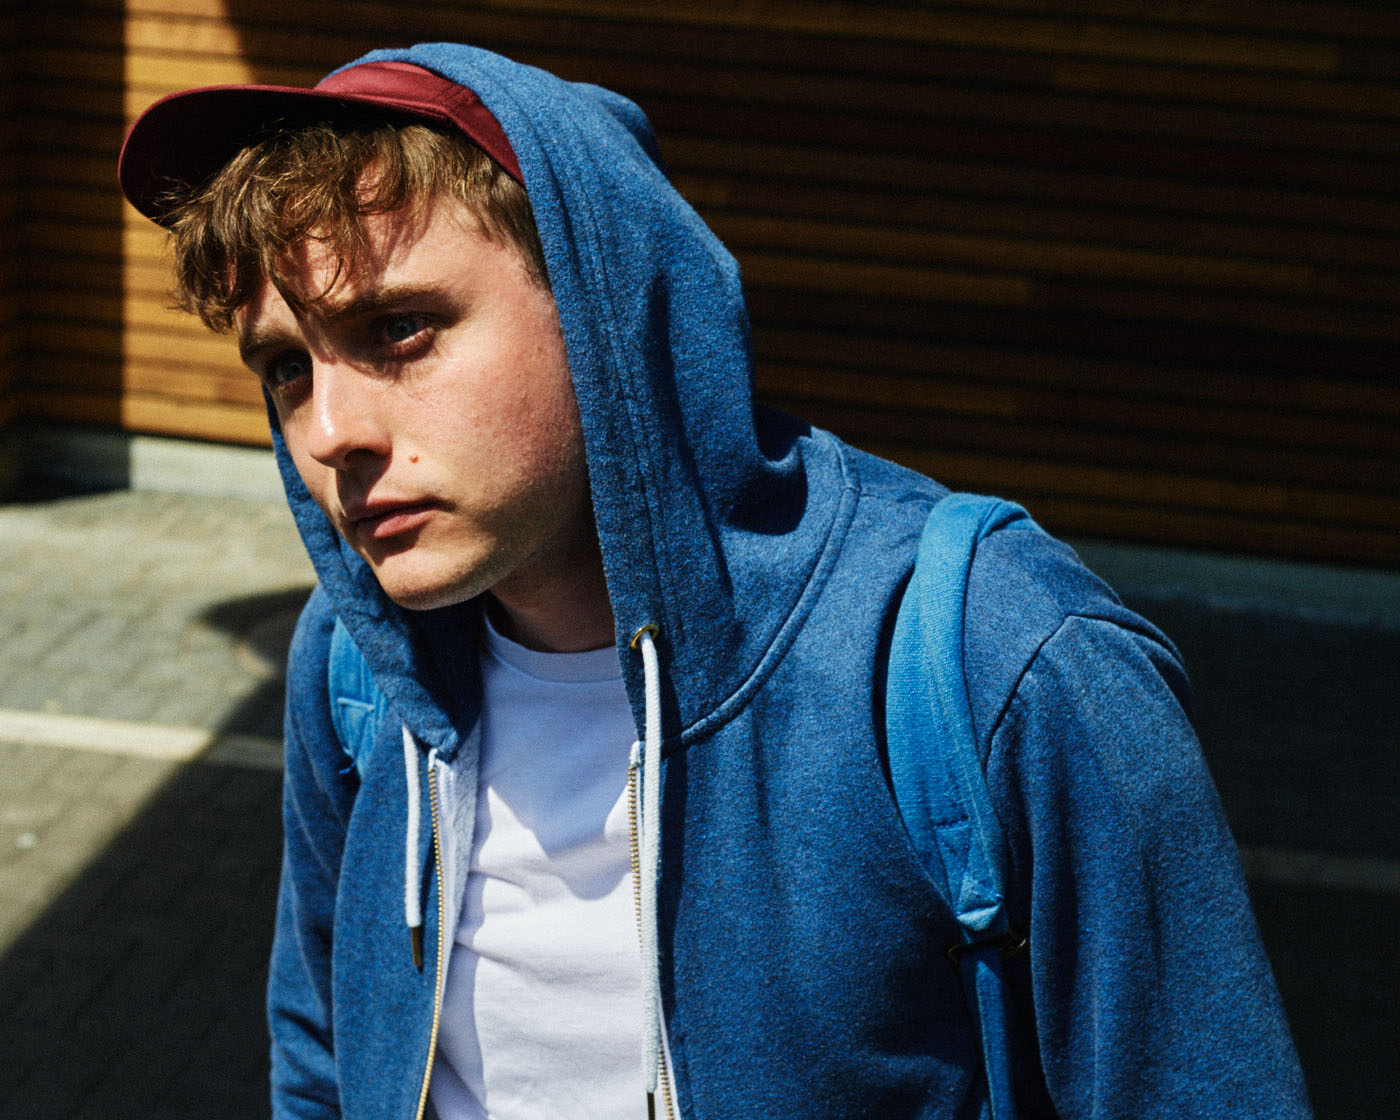 Lifestyle photographer Tim Cole shoots lad in hoodie